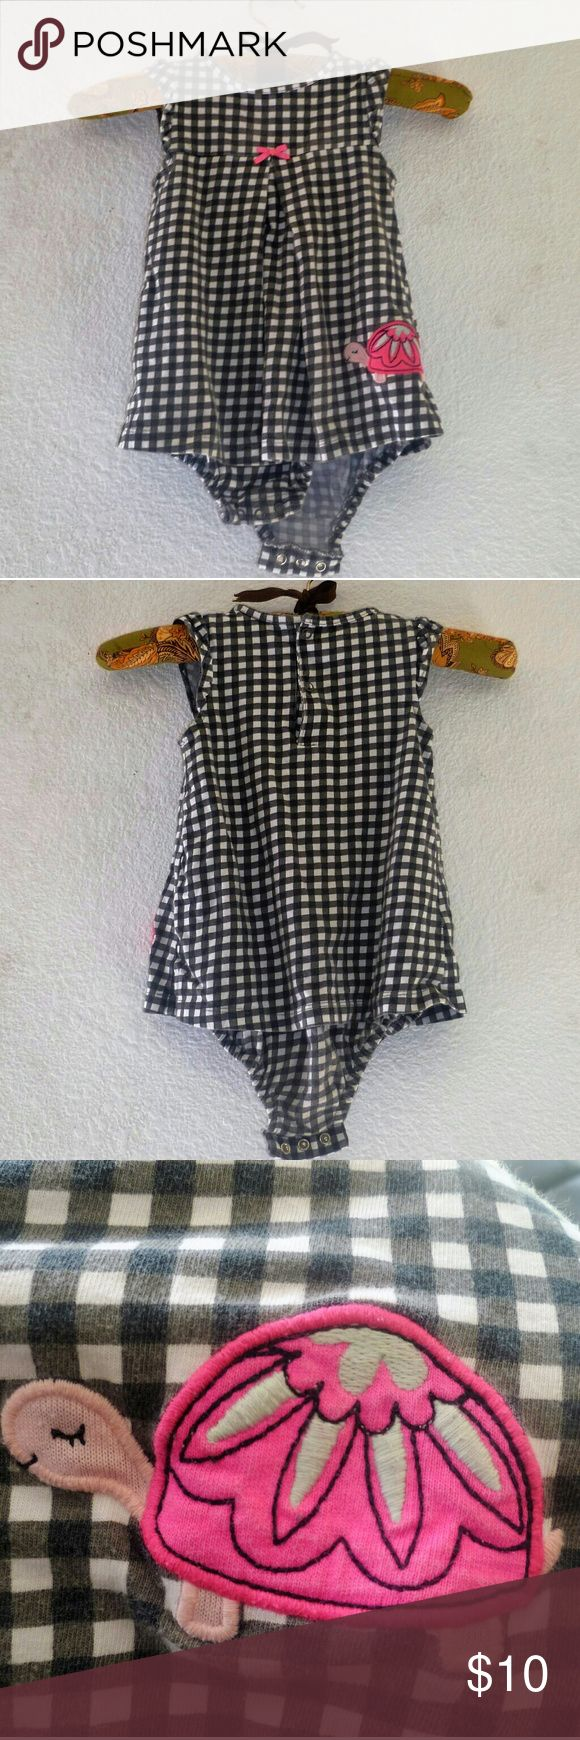 Checkered pattern One piece bodysuit 24m Checkered pattern One piece bodysuit 24m. Great condition no damages. One Pieces Bodysuits